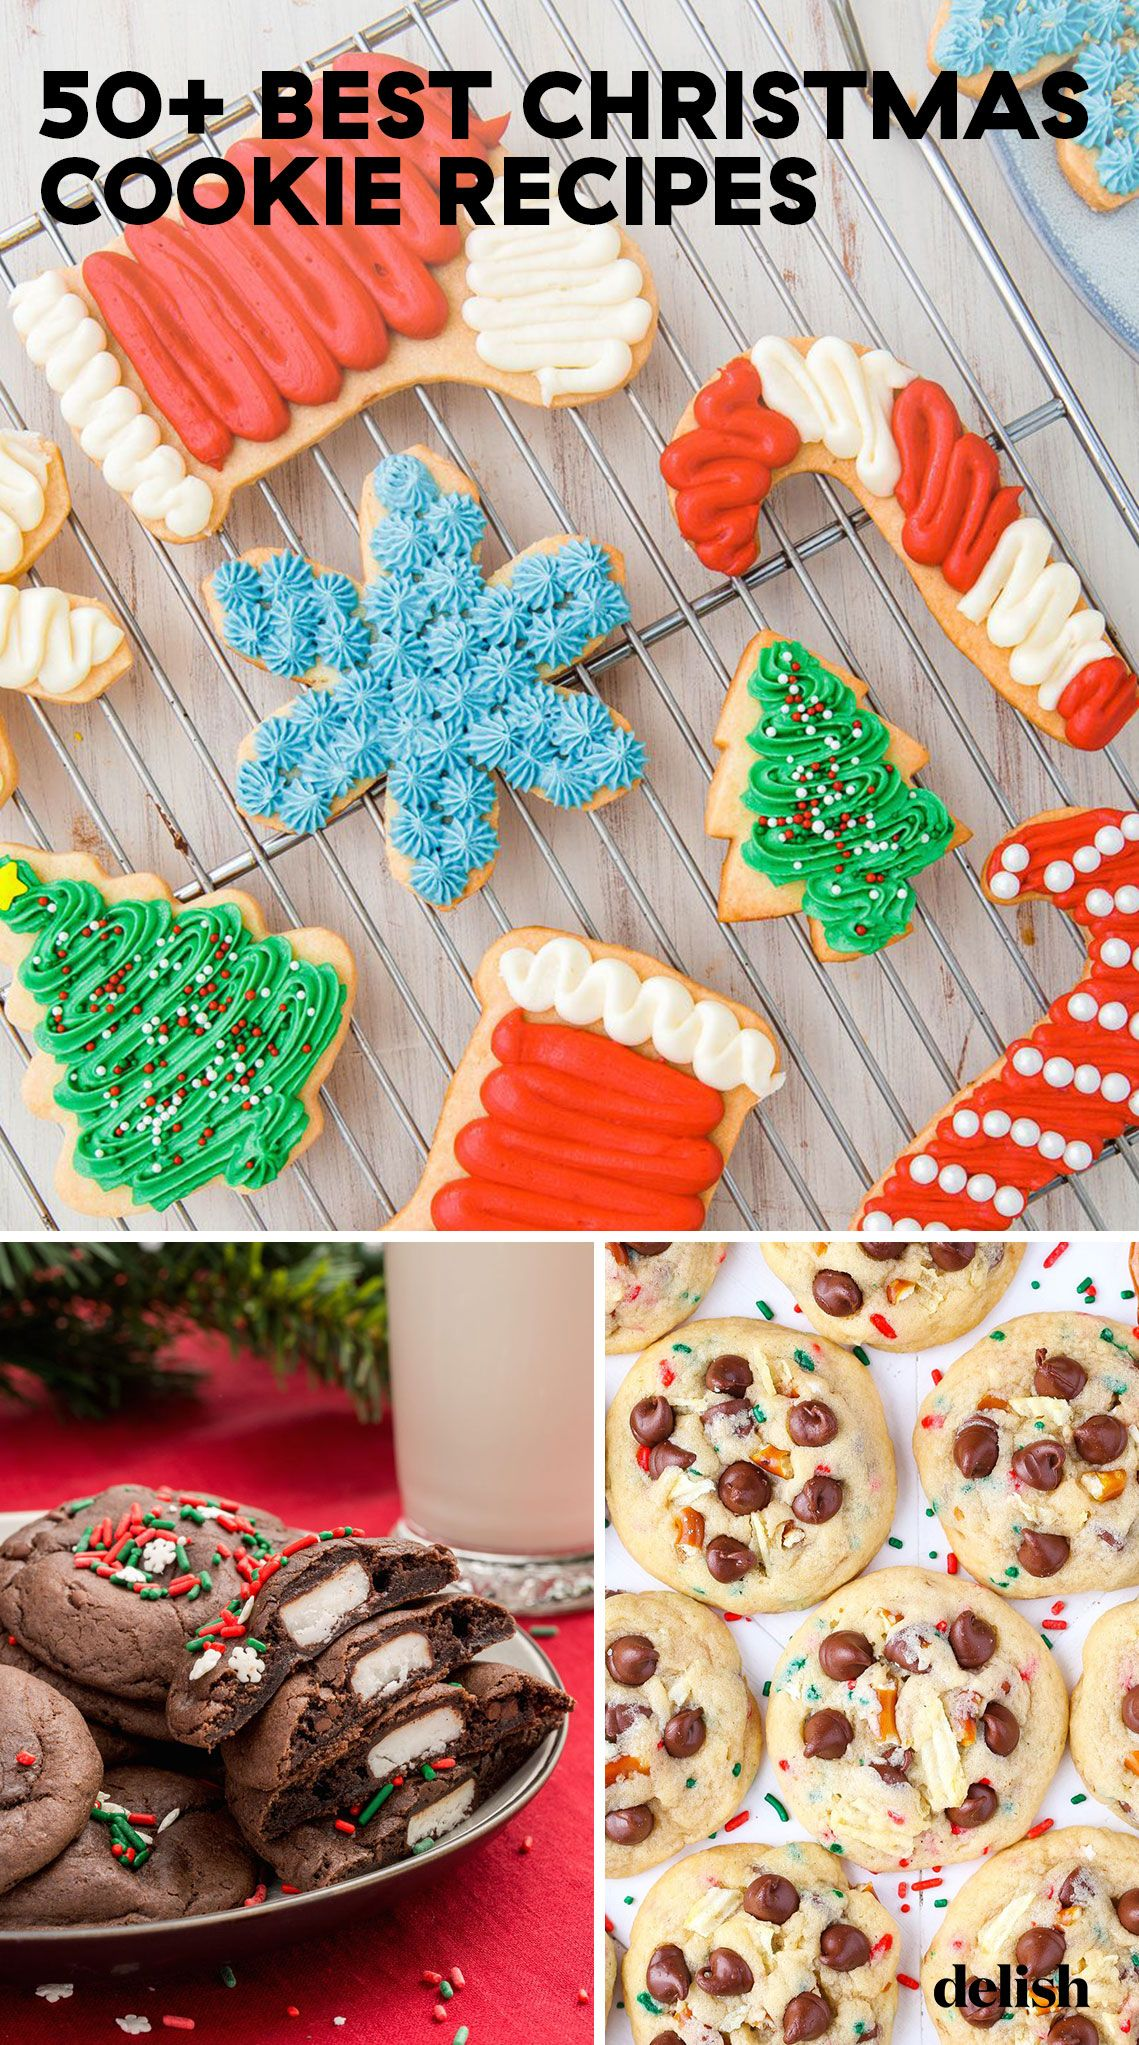 60 Easy Christmas Cookies Best Recipes For Holiday Cookies Delish Com